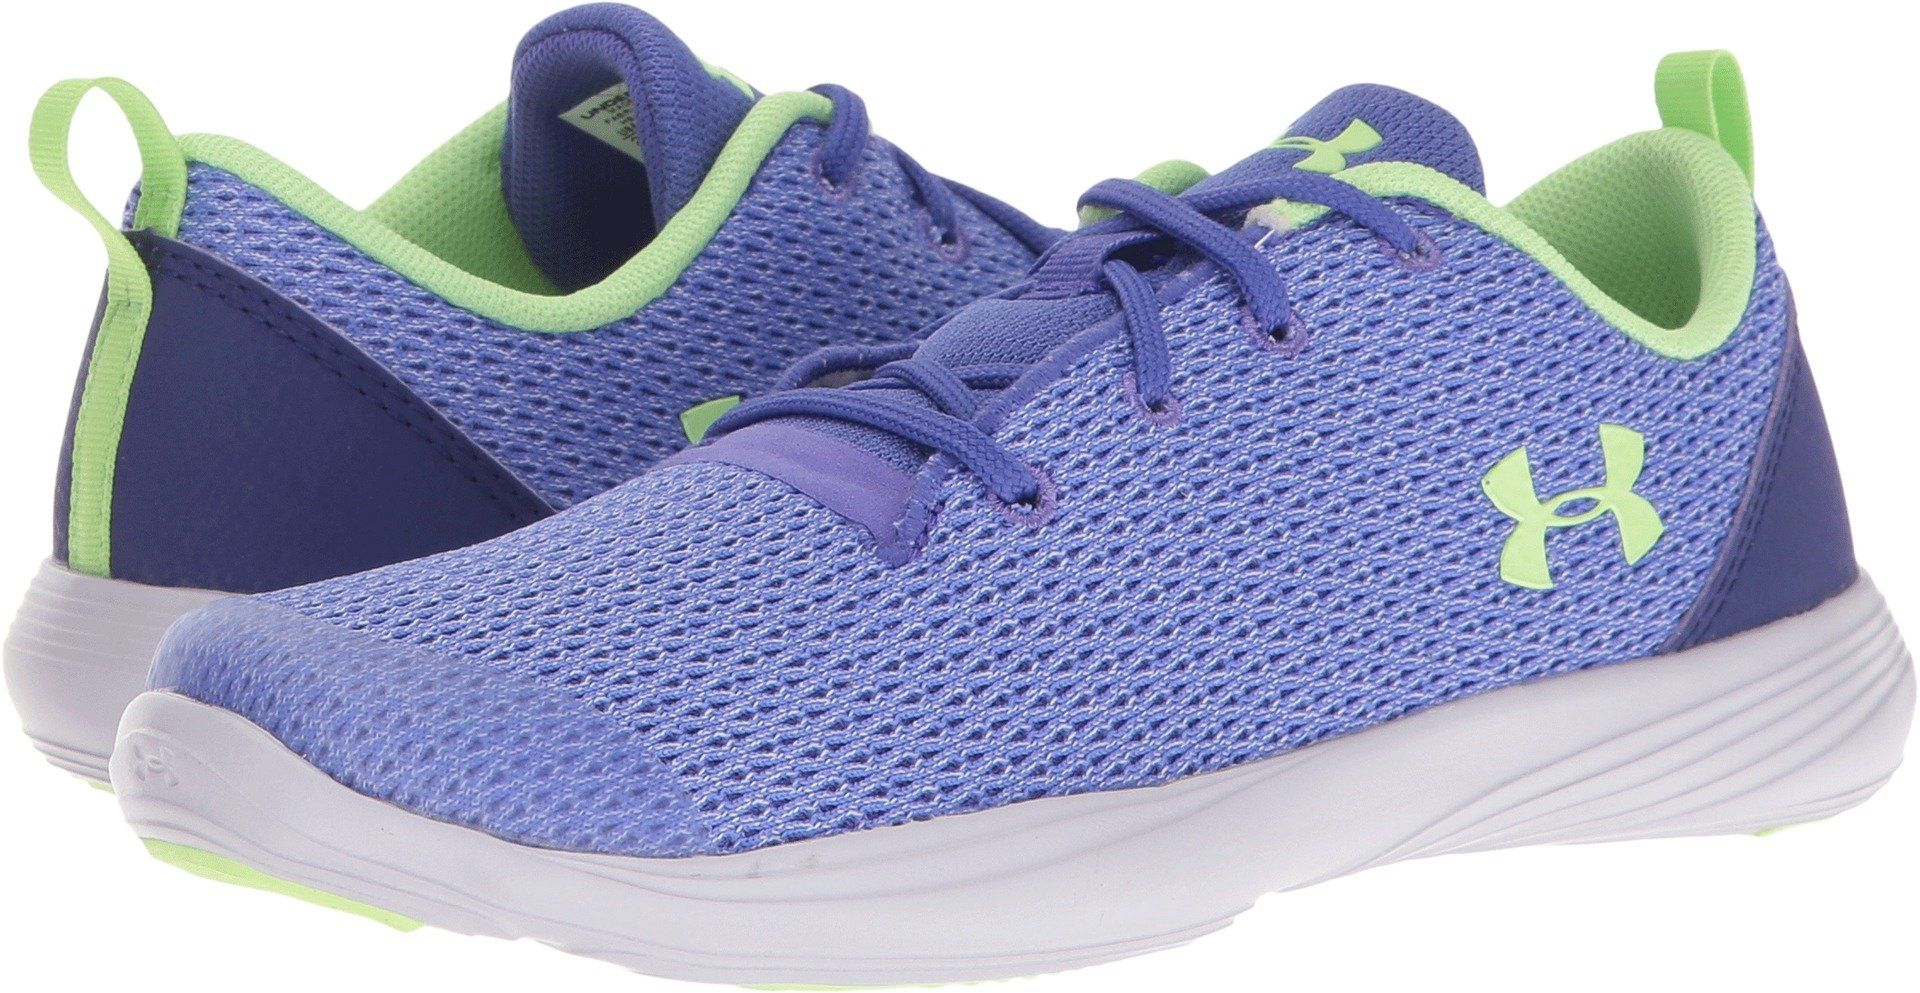 detailed look 36e91 0be21 Under Armour Girls Pre-School Street Precision Sport Low Shoes, Purple  Chic